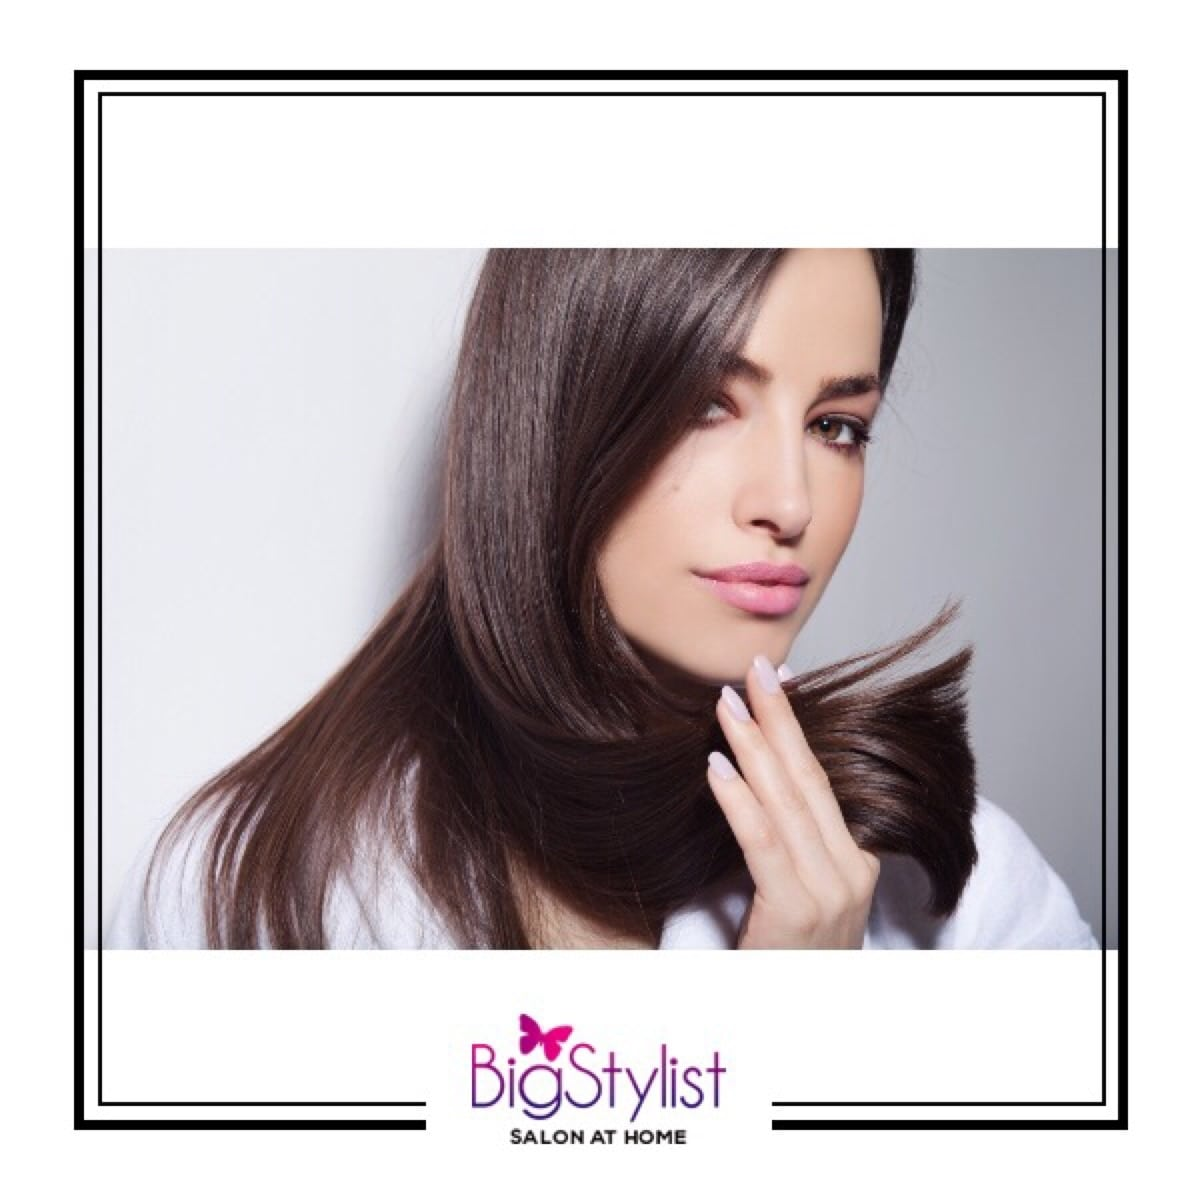 Get perfect straight hair with our hair straightening services and treatments at your doorstep! Like this? Say a Hi on WhatsApp at 9920465699 for more such fantastic stuff! #hairstraightening #hairtreatments #hair #salonathome #spaathome #straighthair #beauty #beautyservices #women #stayhomebeautiful #BigStylist